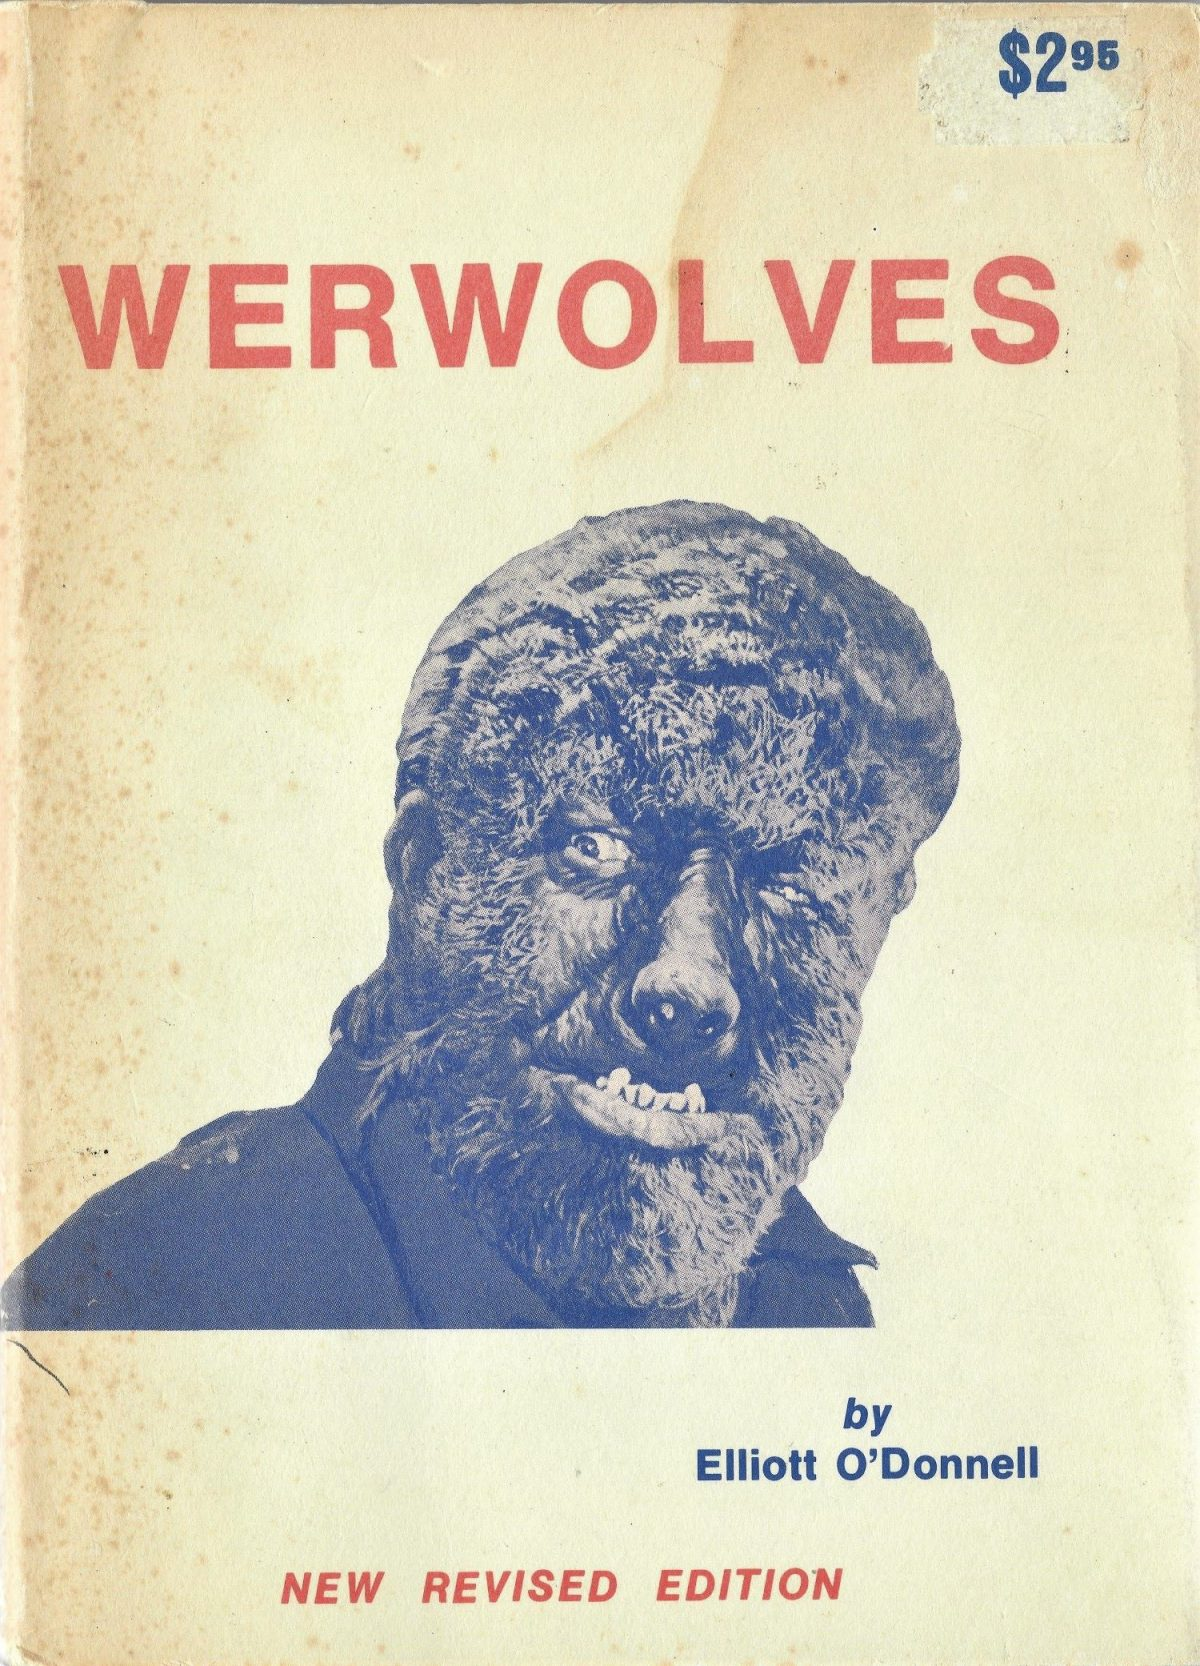 Werwolves, Elliott O'Donnell, book, werewolves